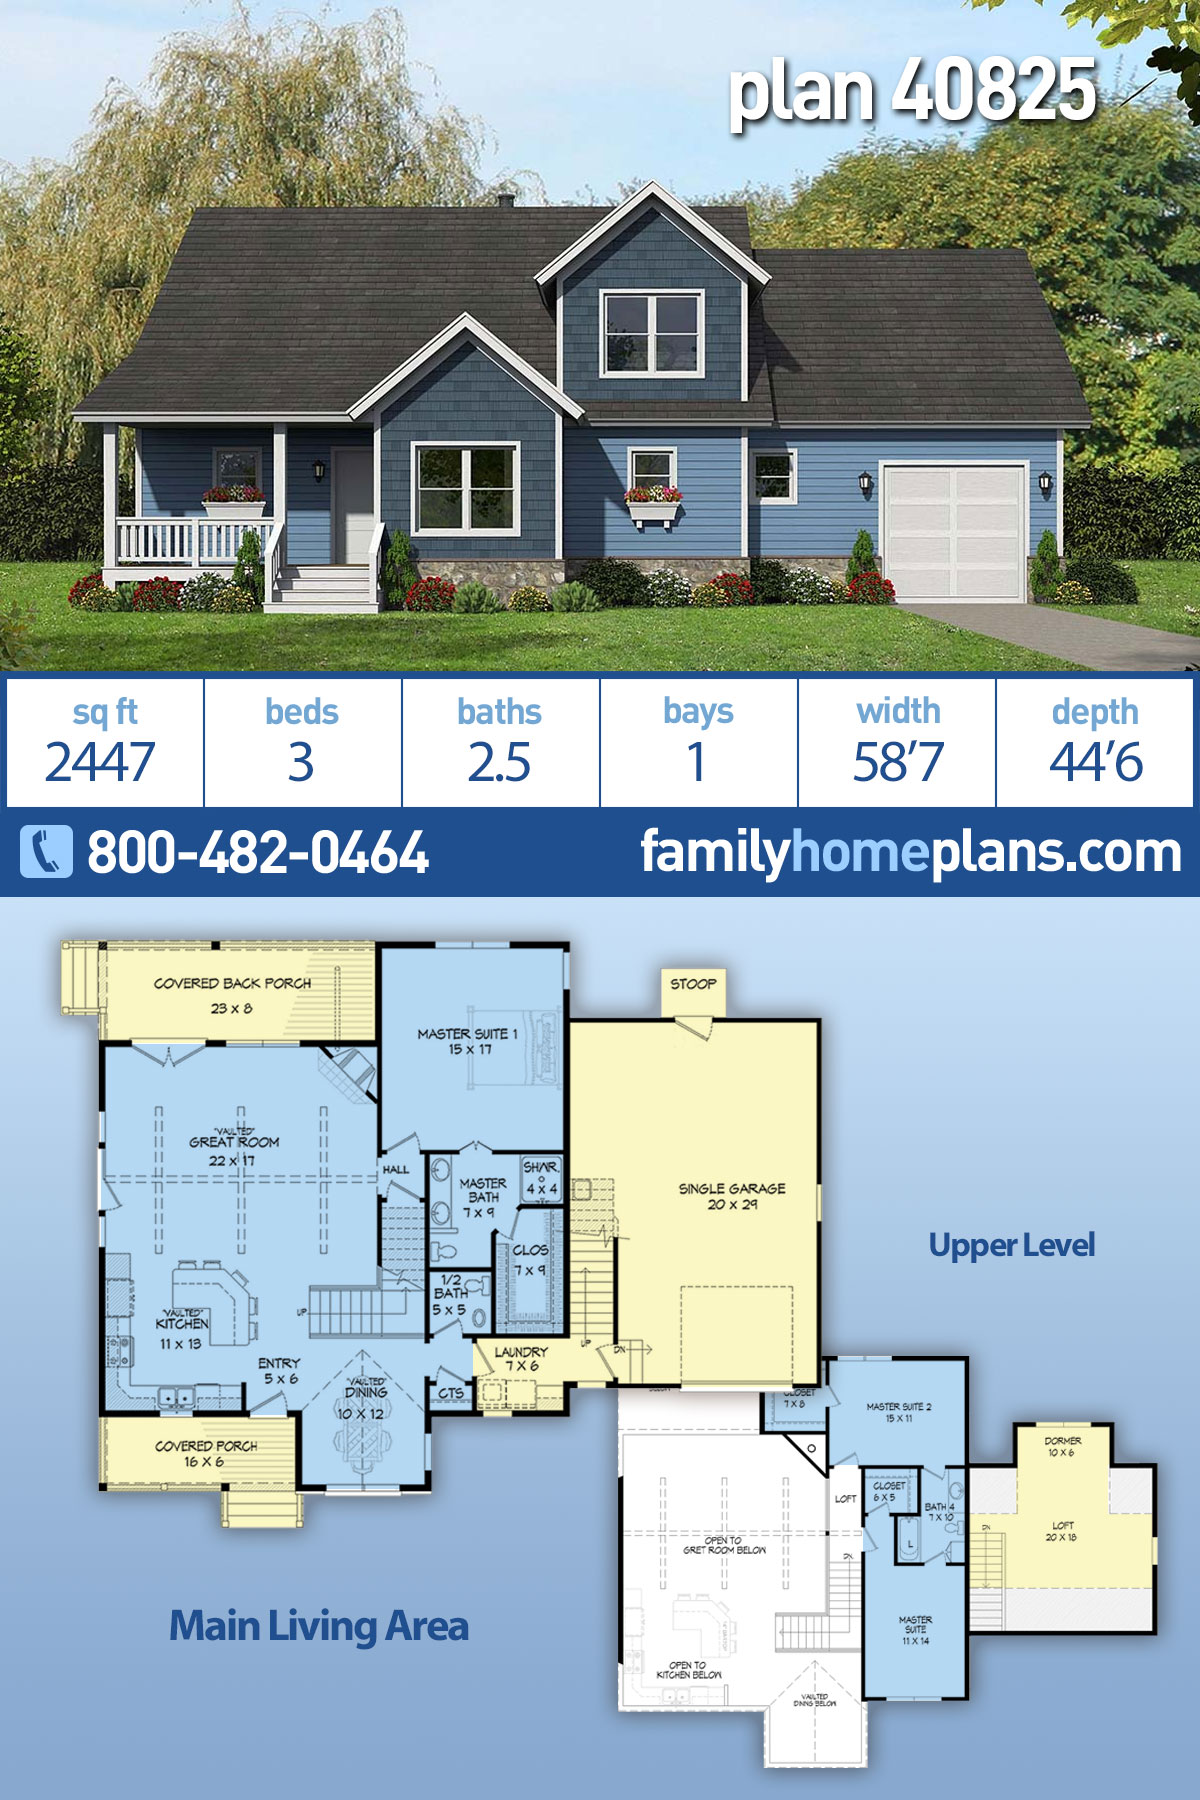 Country, Farmhouse, Traditional House Plan 40825 with 3 Beds, 3 Baths, 1 Car Garage